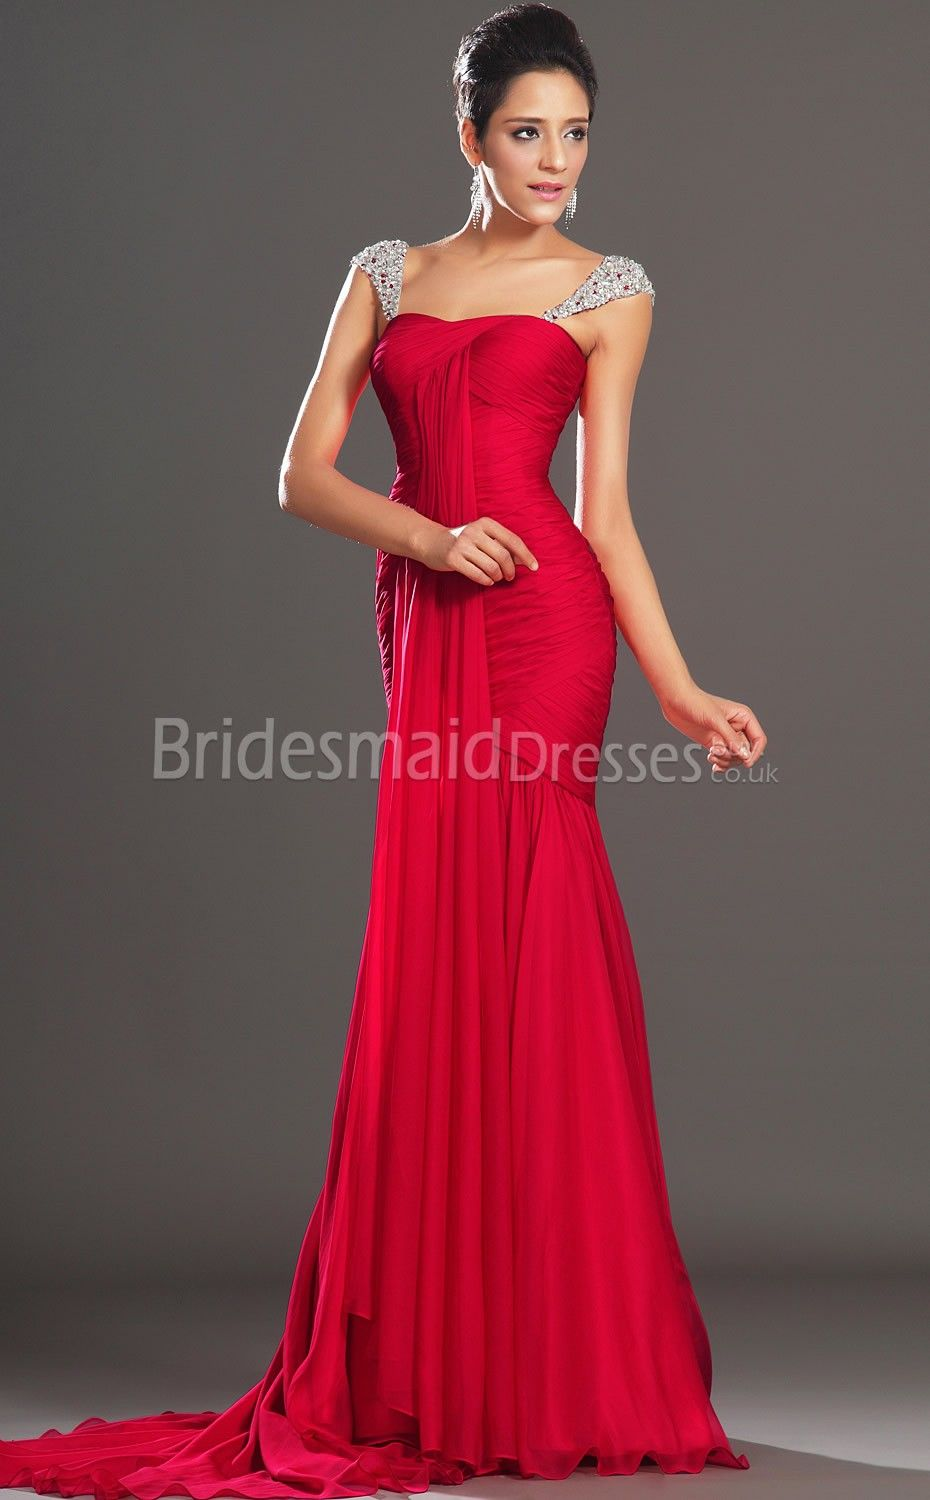 Dark red floor length dress google search my closet dark red floor length dress google search ombrellifo Image collections